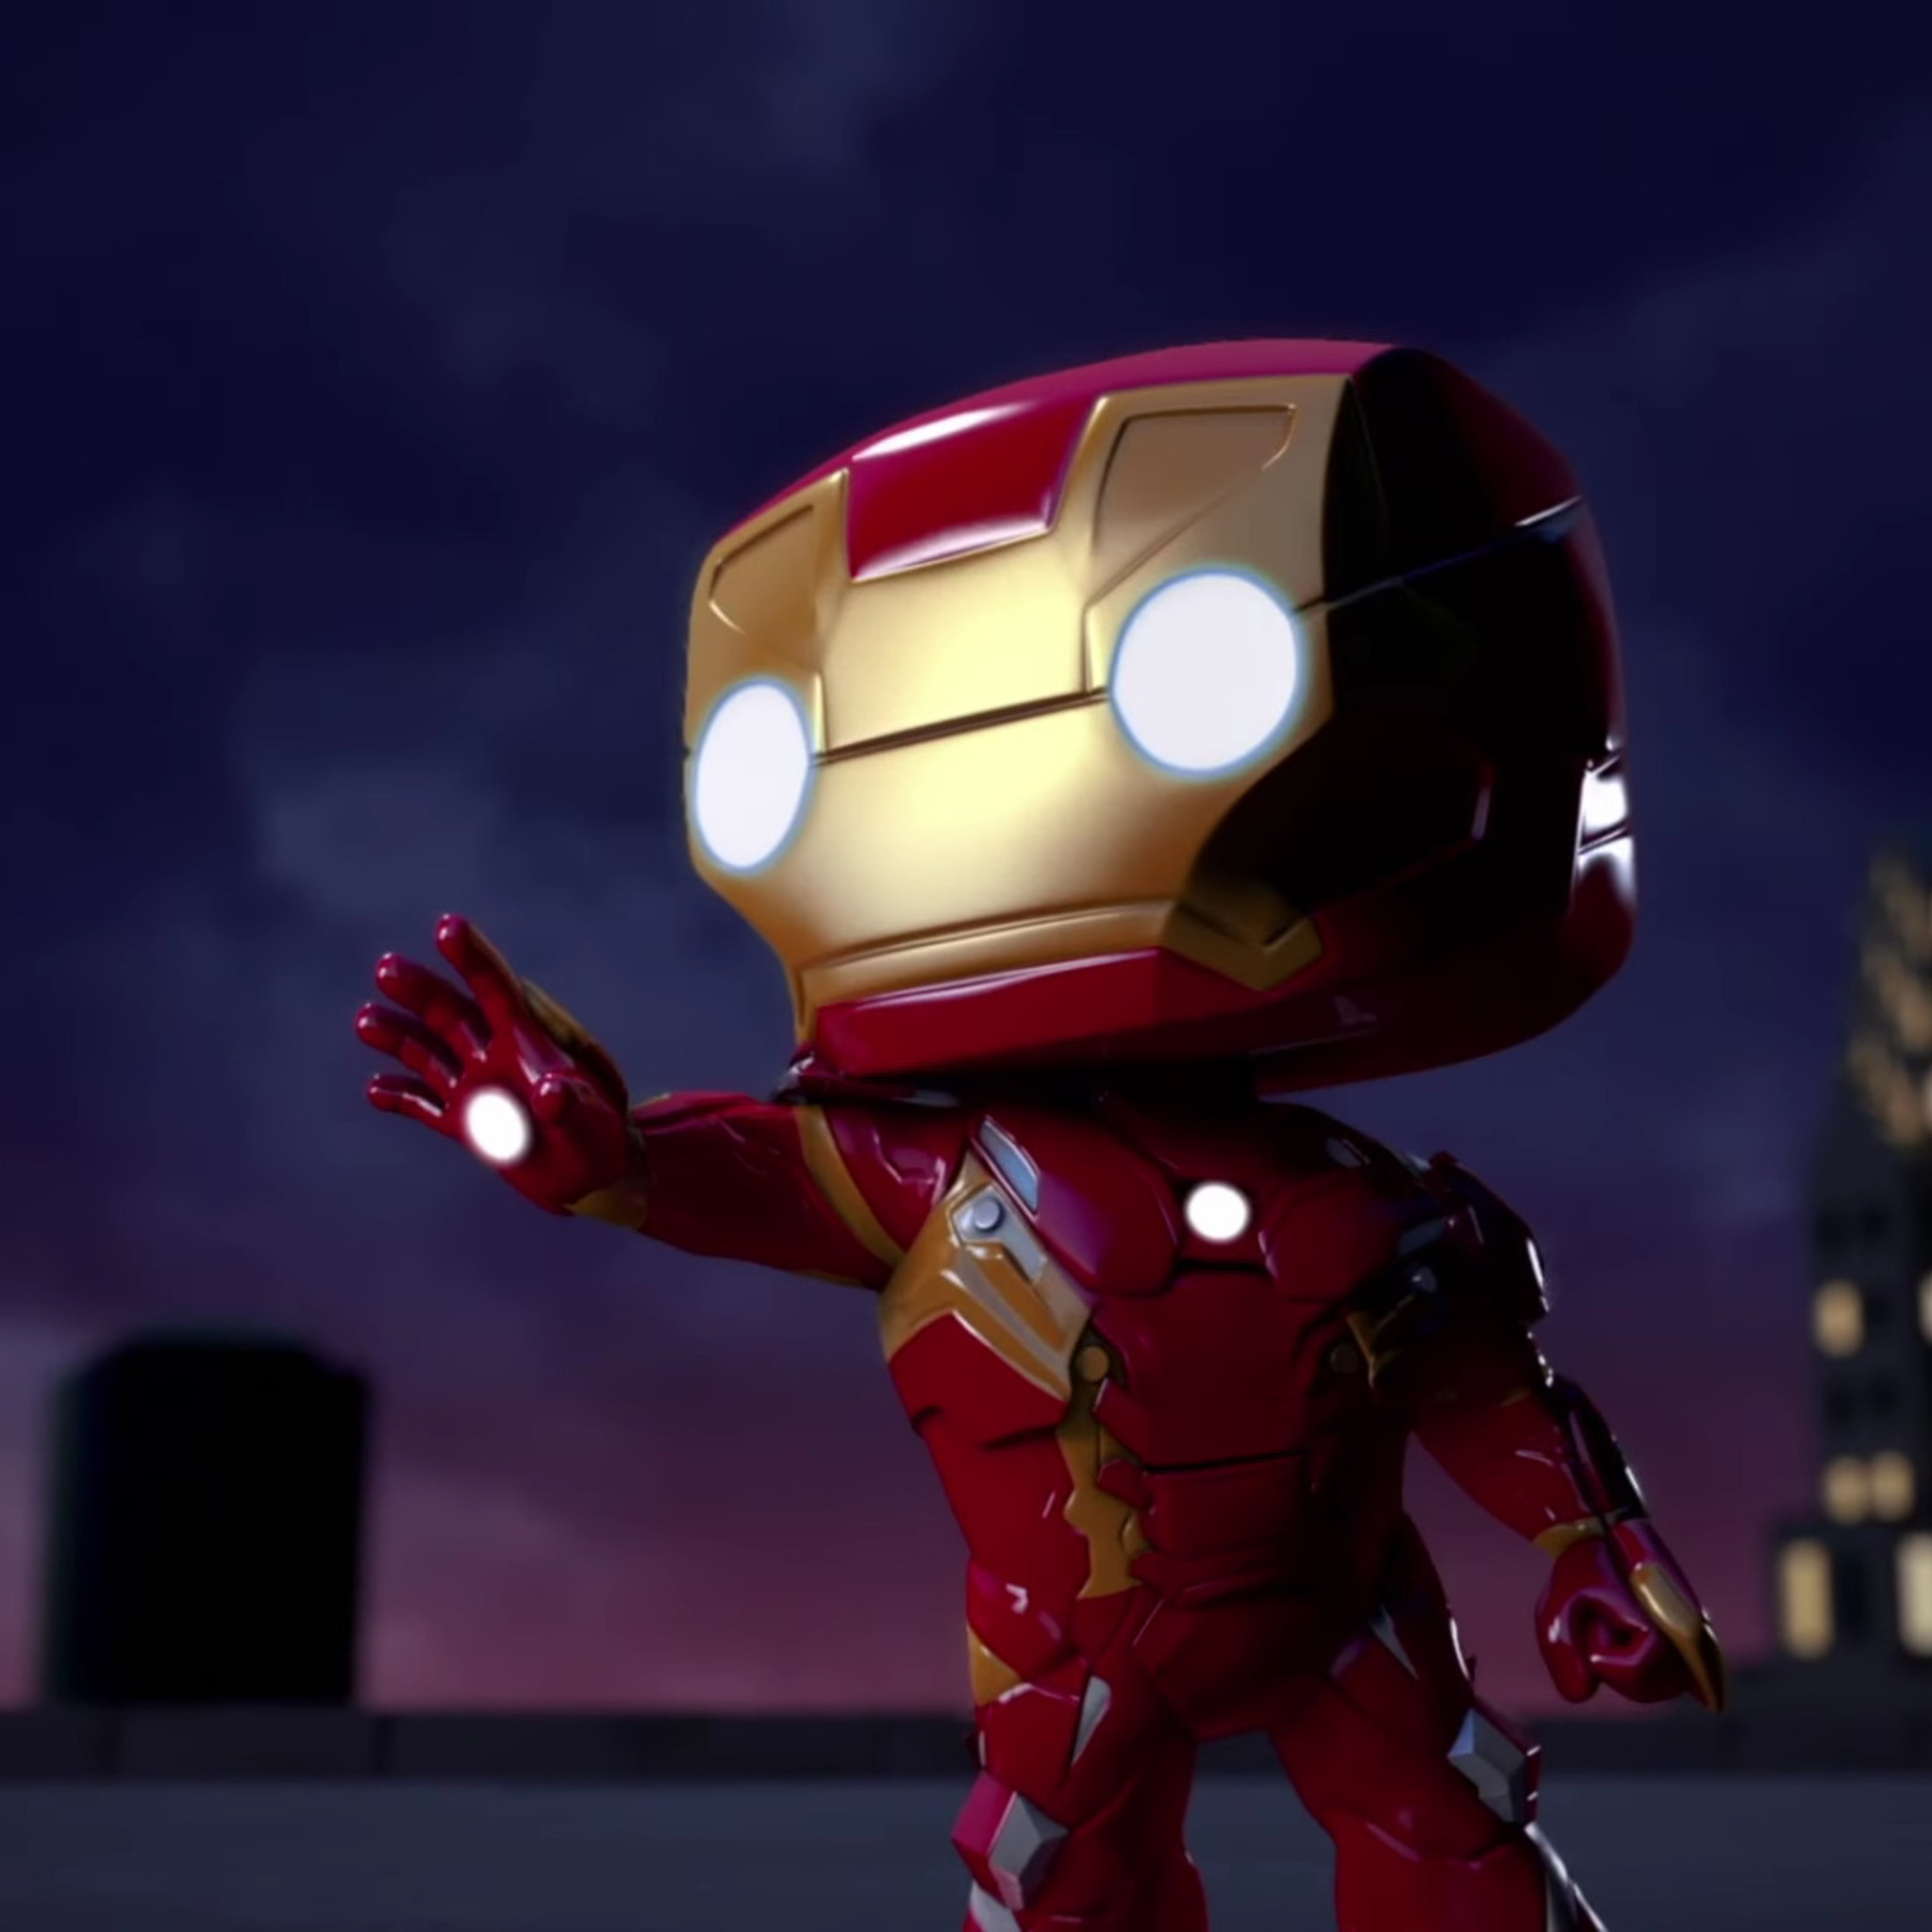 2048x2048 iron man spellbound animated movie ipad air hd - Iron man wallpaper anime ...